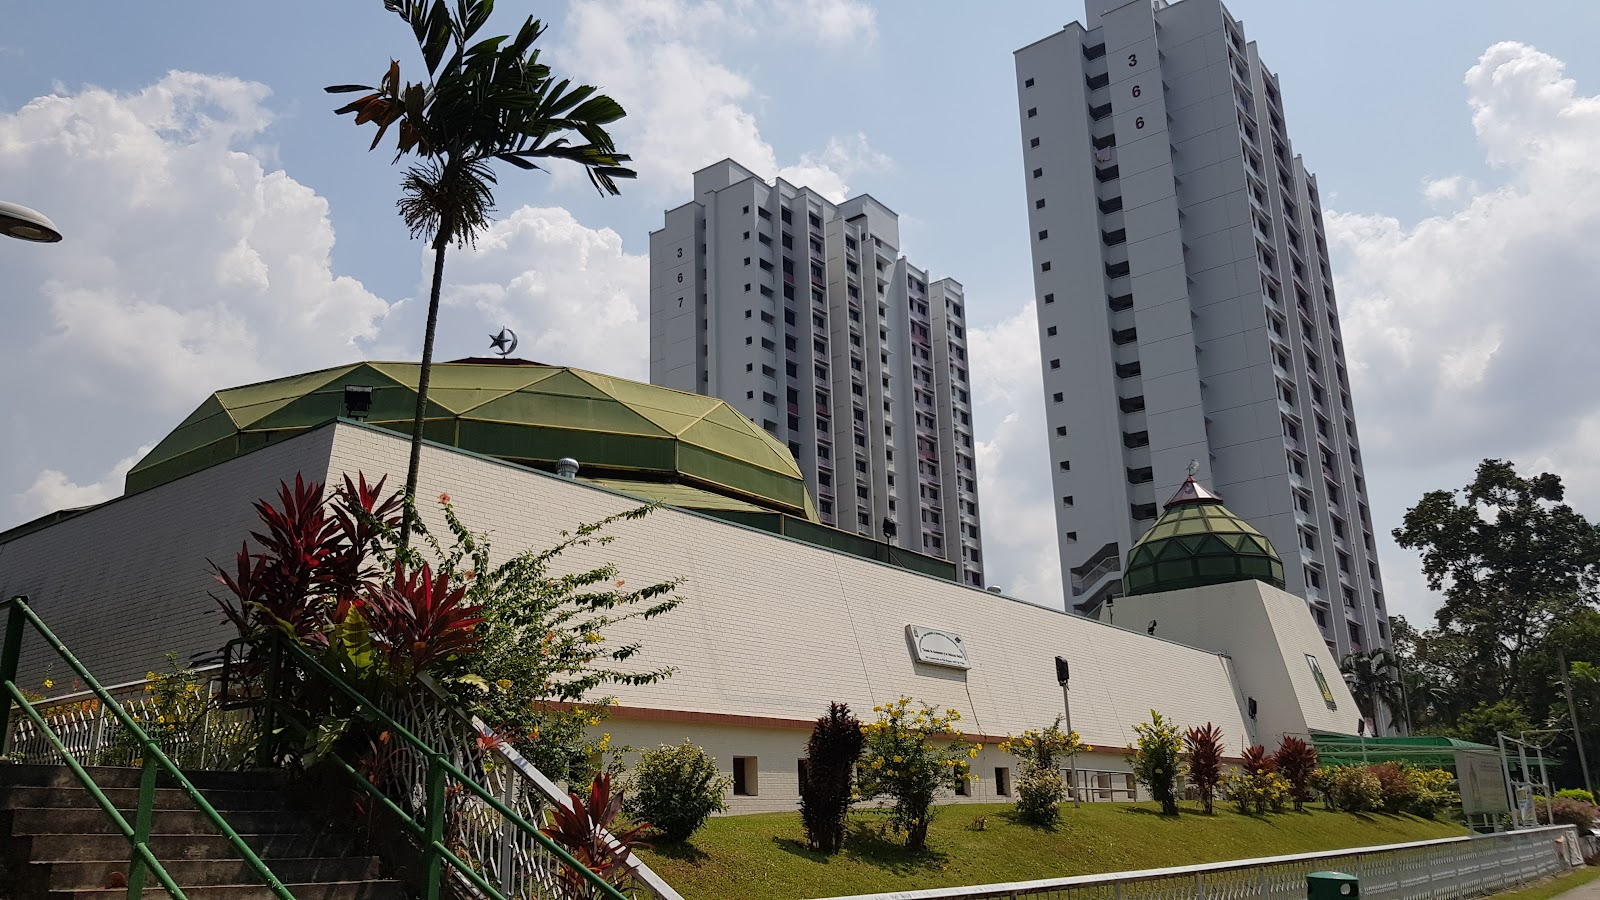 Masjid Darussalam provides free ice cream after Terawih